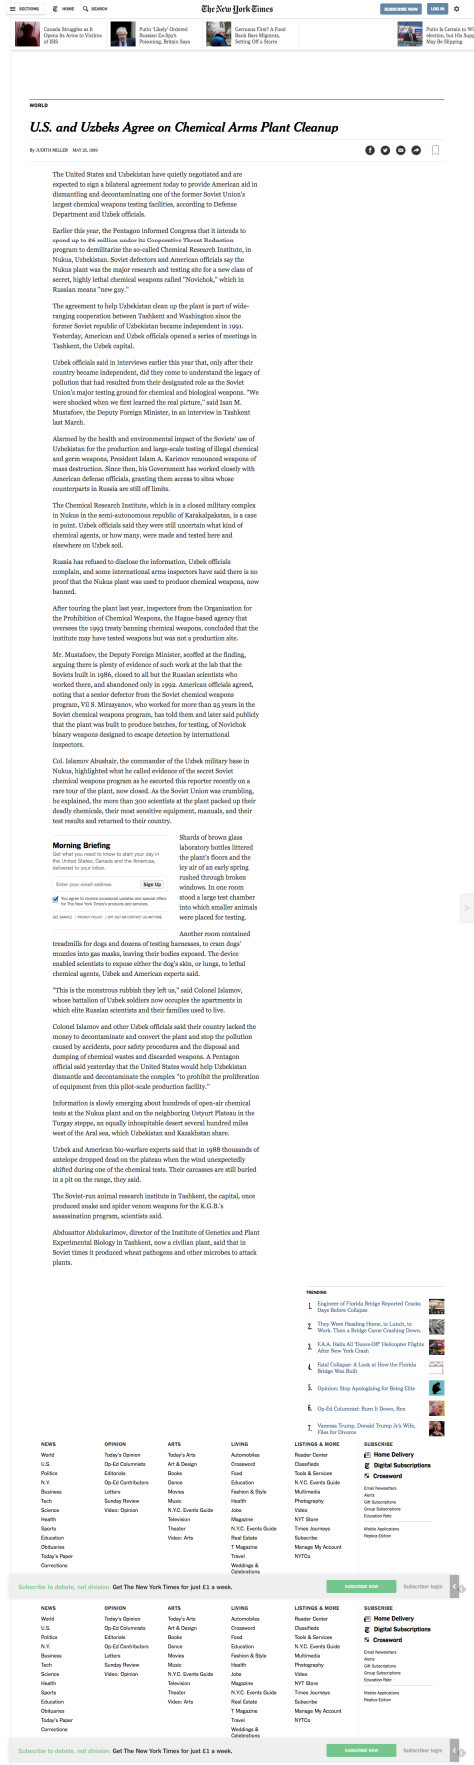 screencapture-nytimes-1999-05-25-world-us-and-uzbeks-agree-on-chemical-arms-plant-cleanup-html-2018-03-17-01_46_27